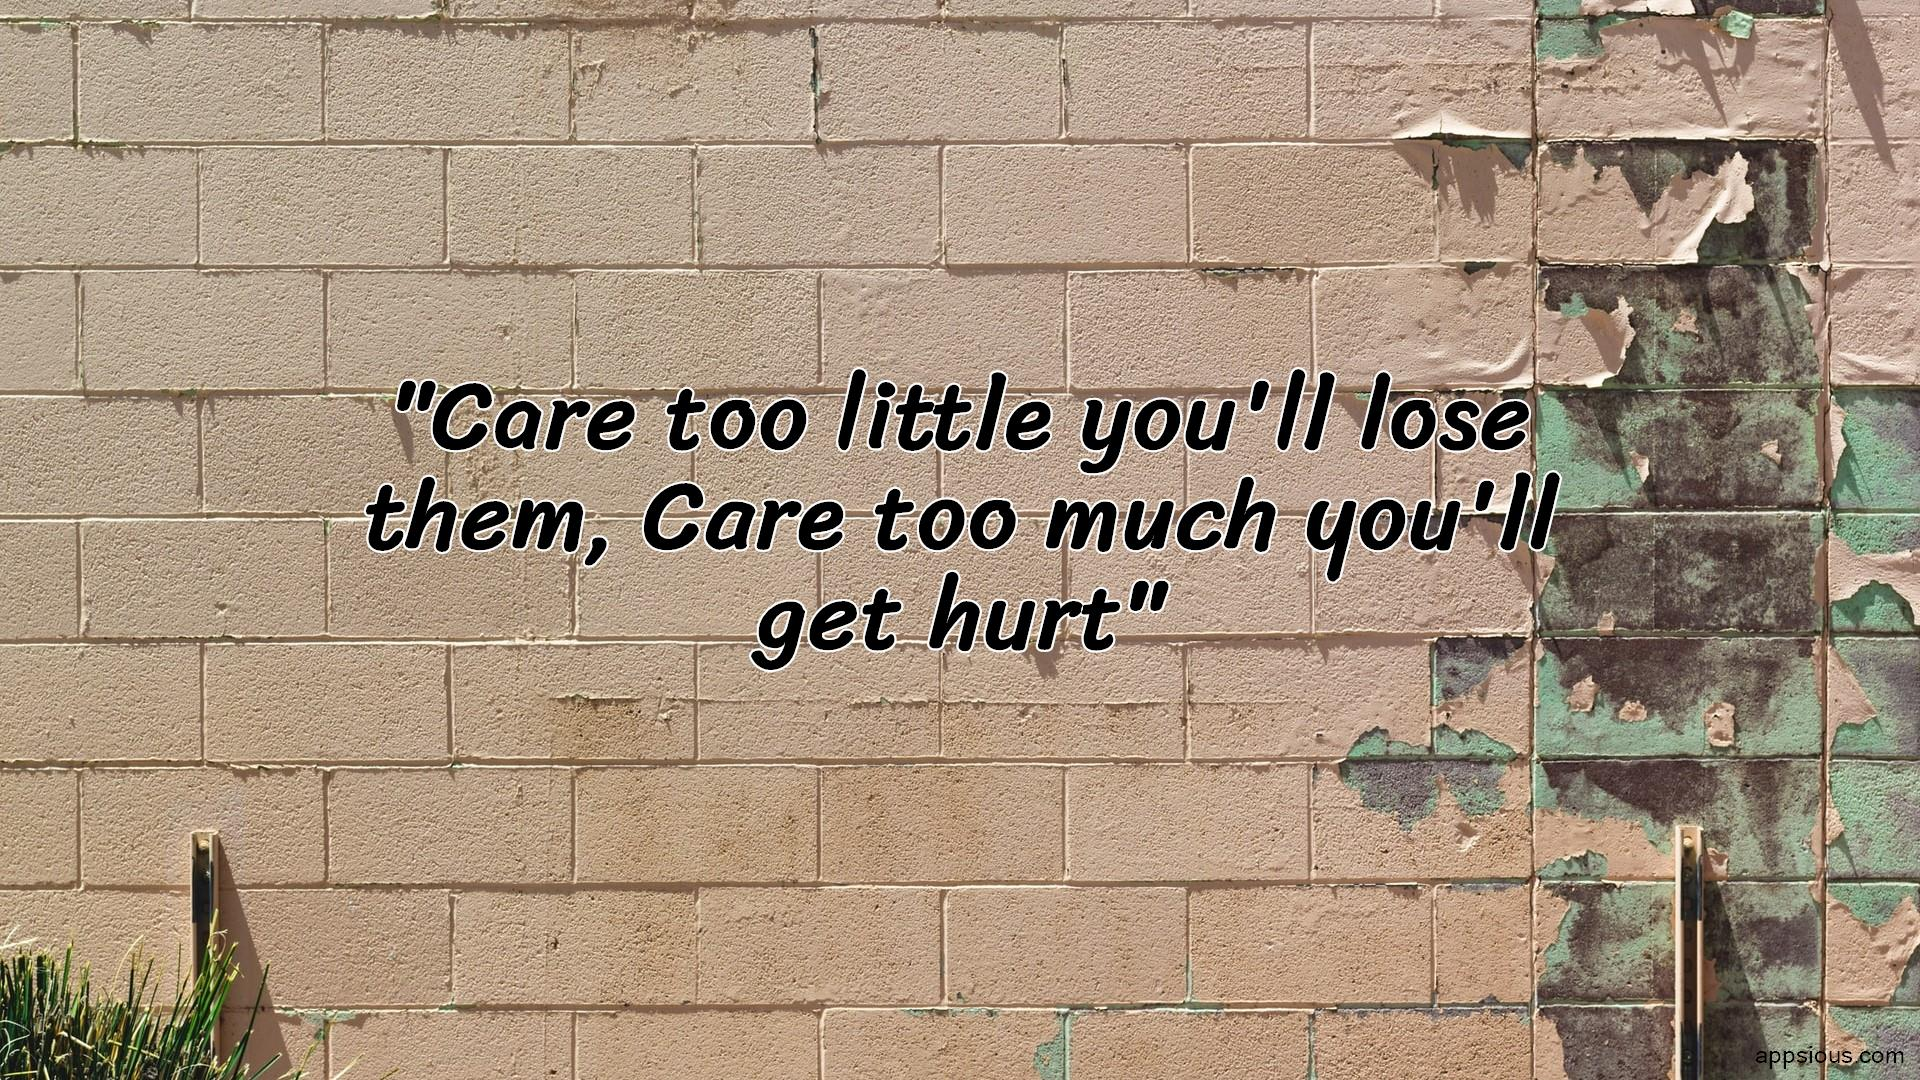 Care too little you'll lose them, Care too much you'll get hurt